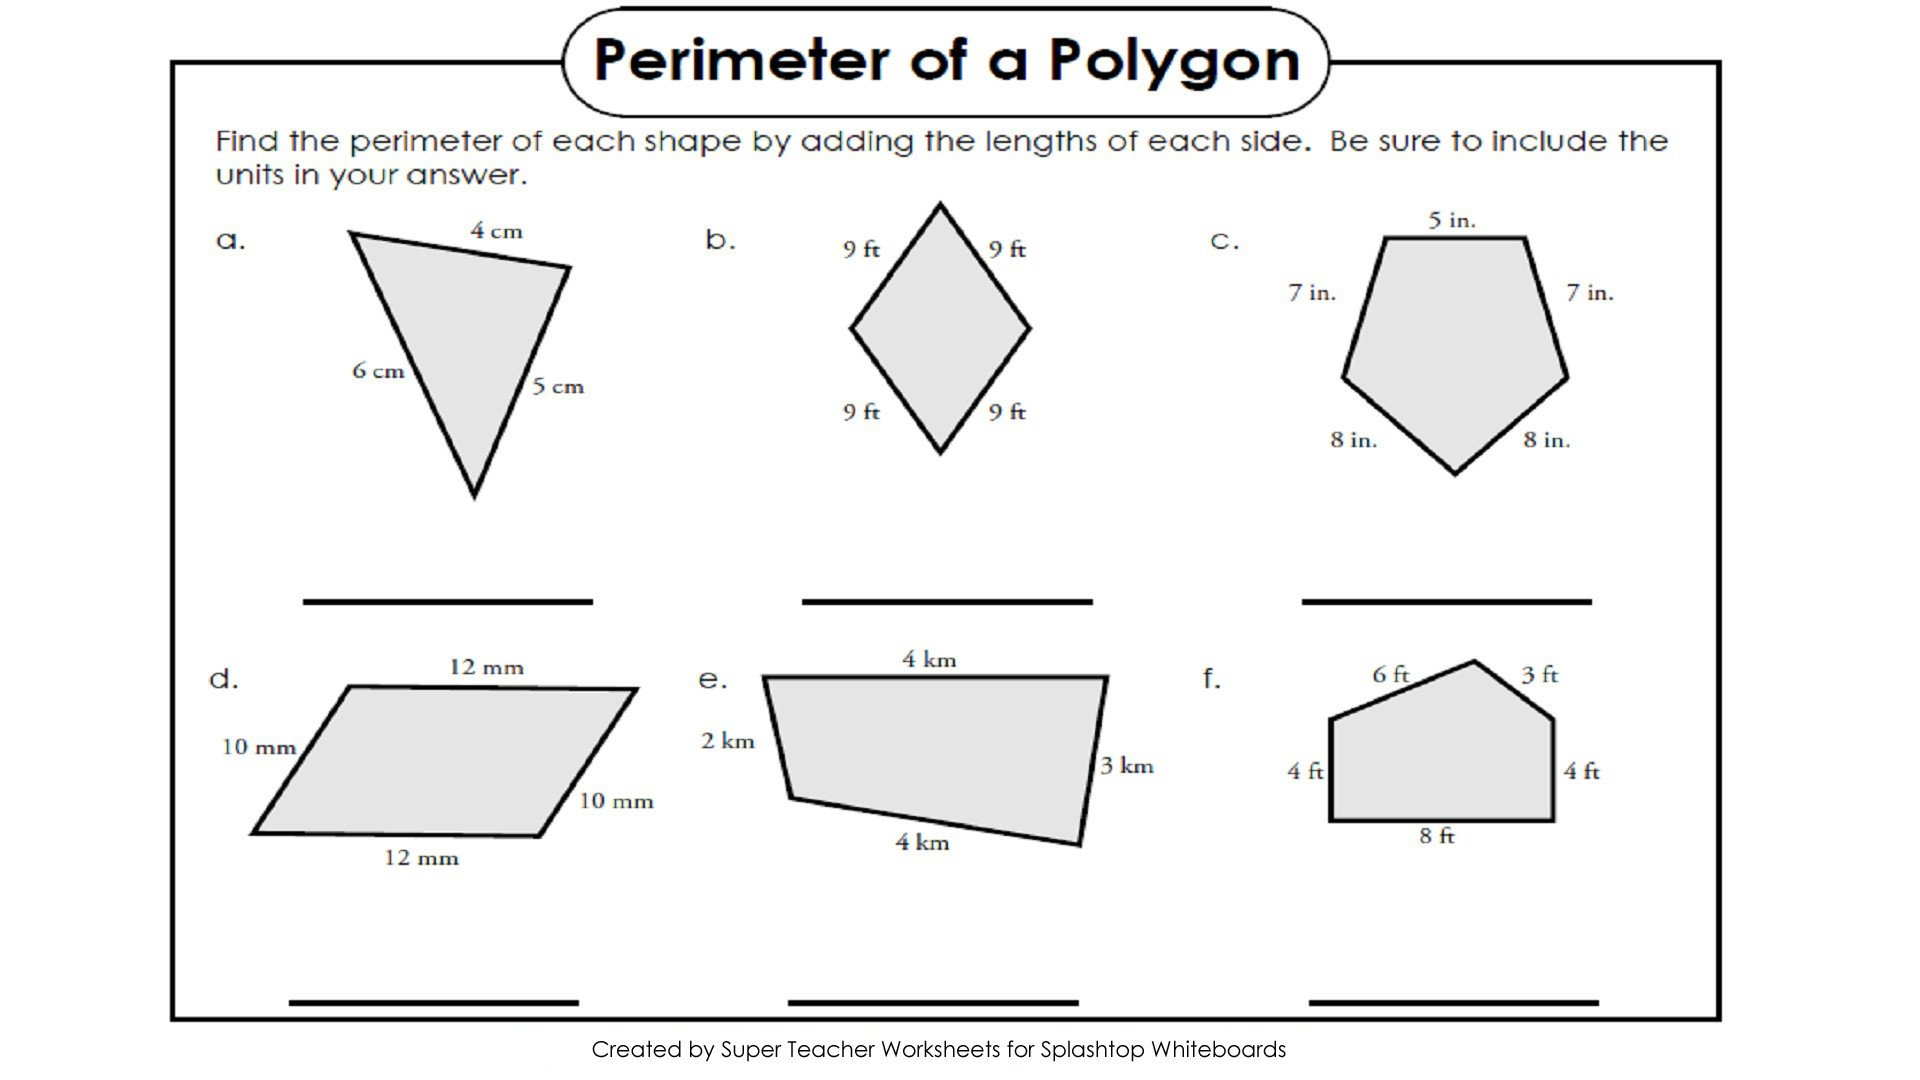 Polygons Worksheets 5th Grade Free Perimeter Worksheets